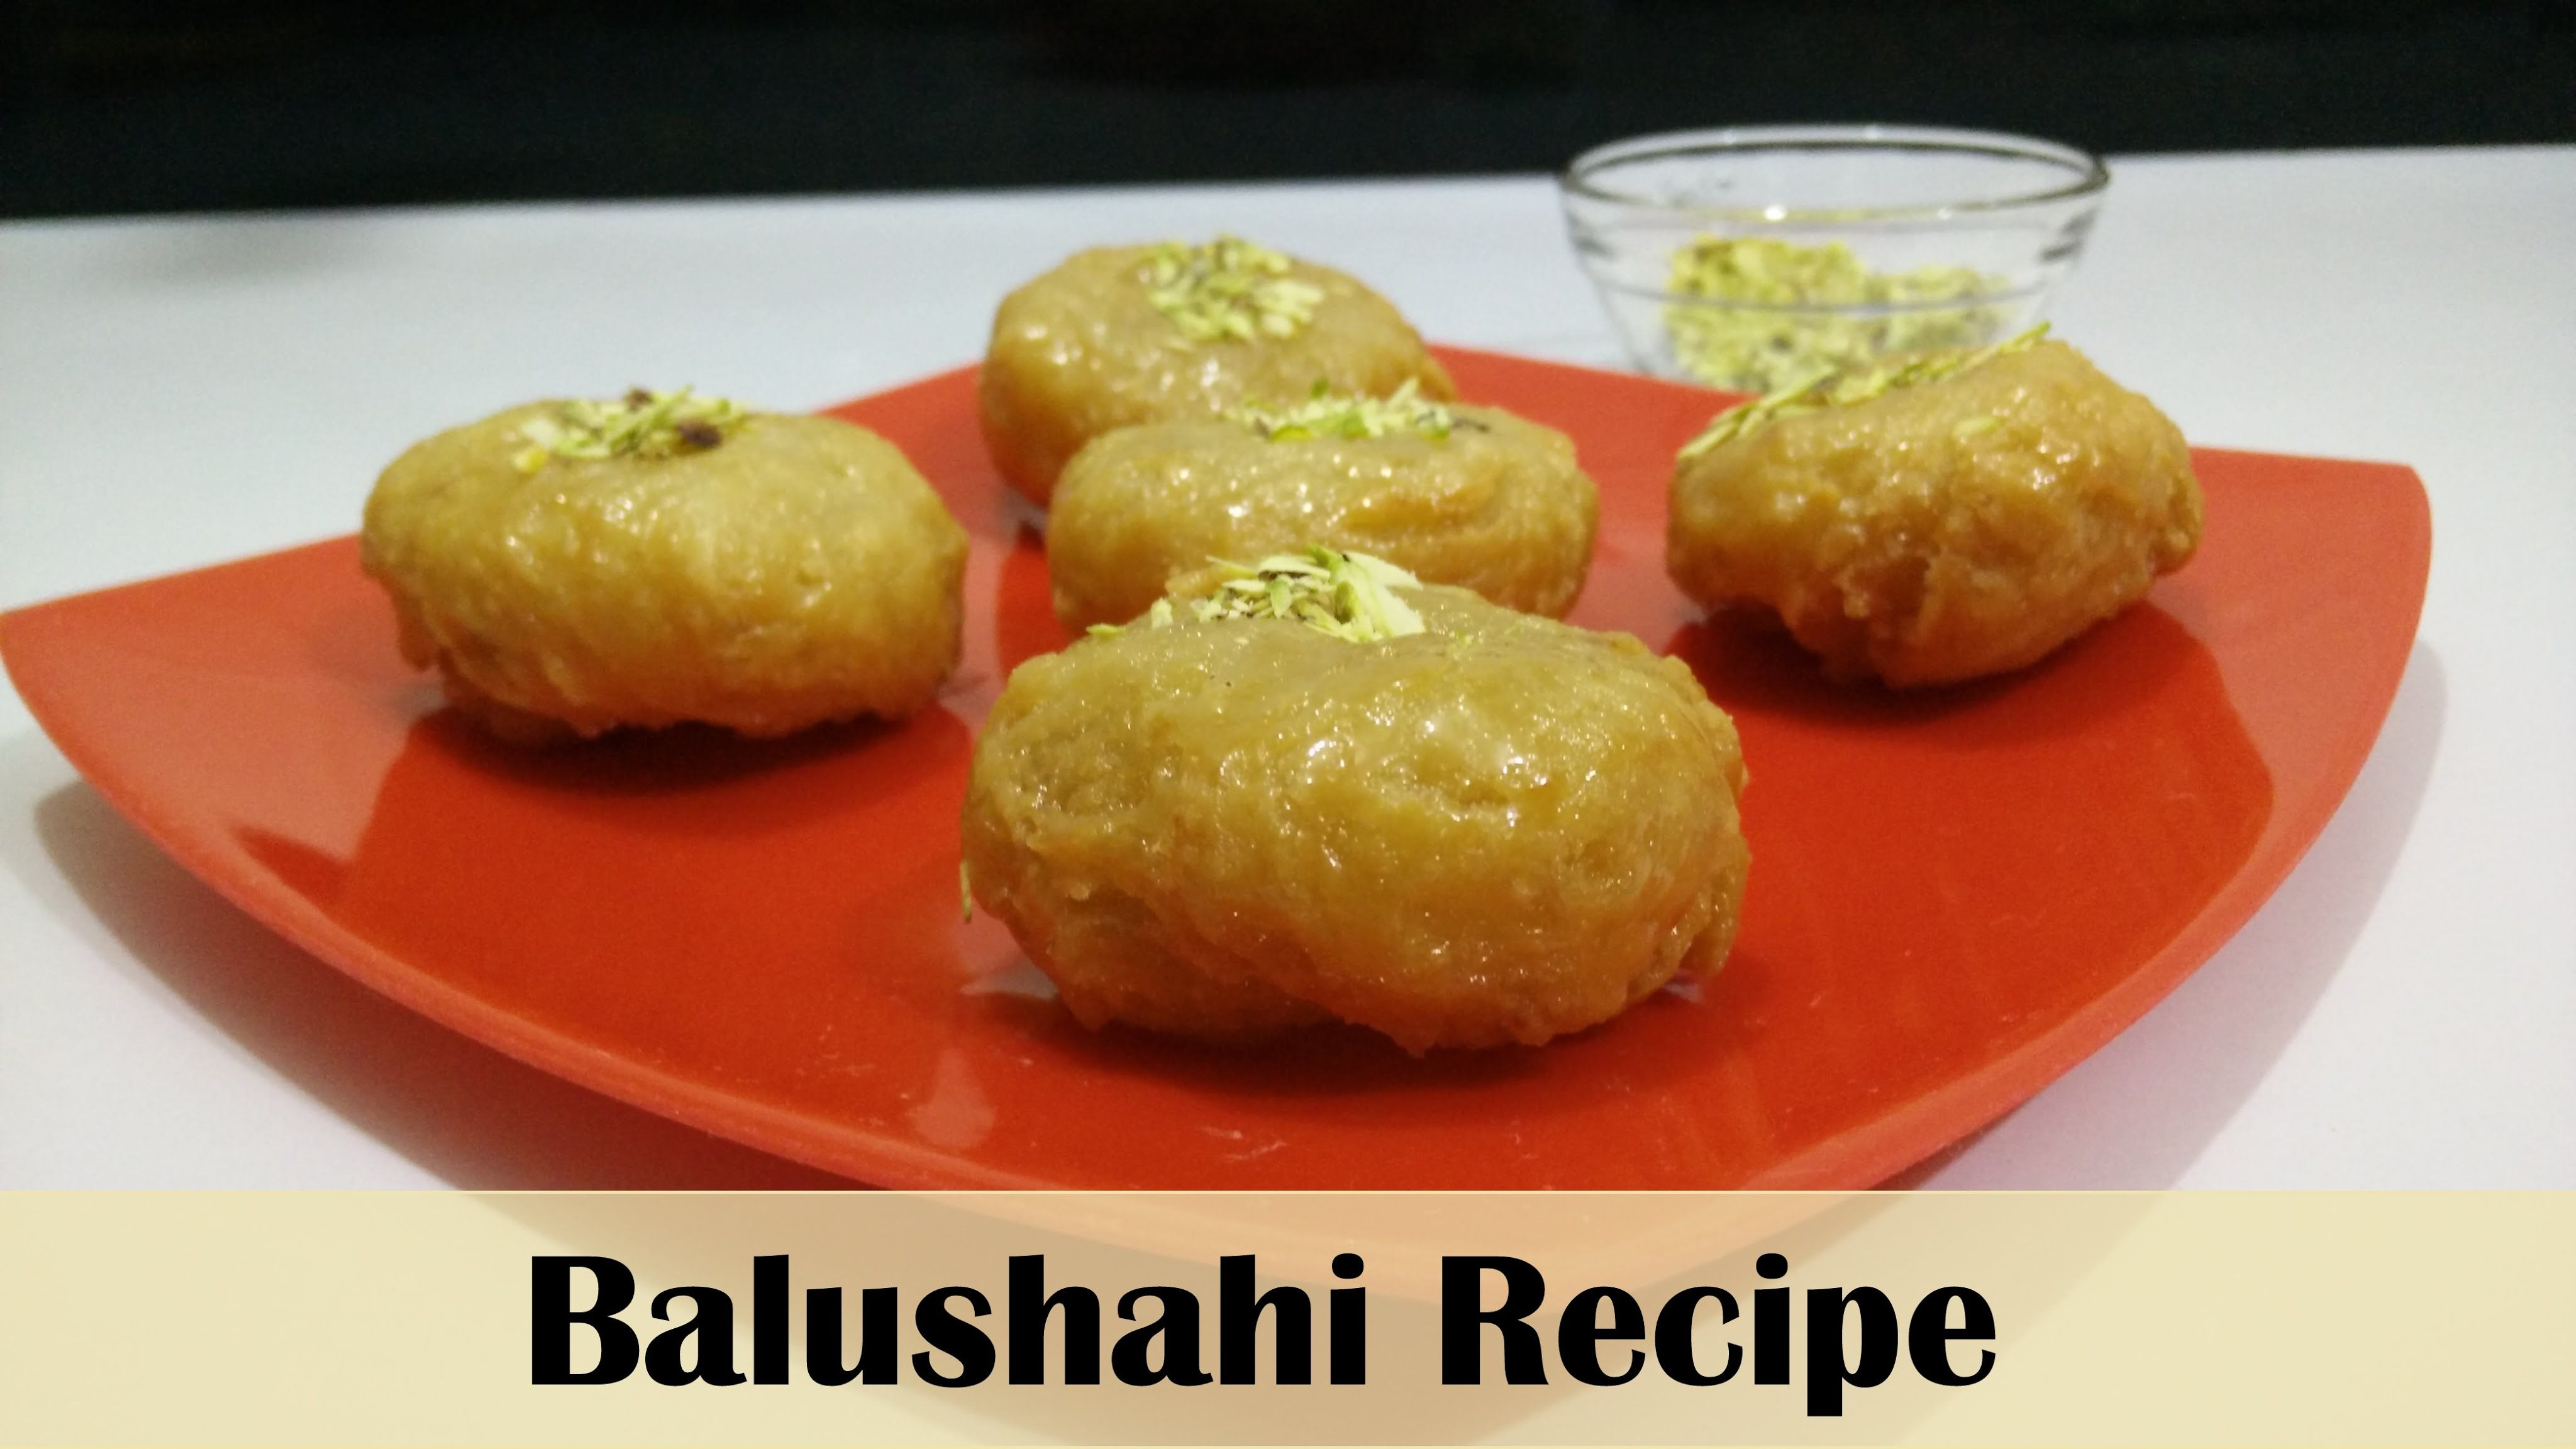 Balushahi recipe diwali special sweets balushahi is a traditional c4801dd16bd05d95b6151fe72290349fg forumfinder Image collections